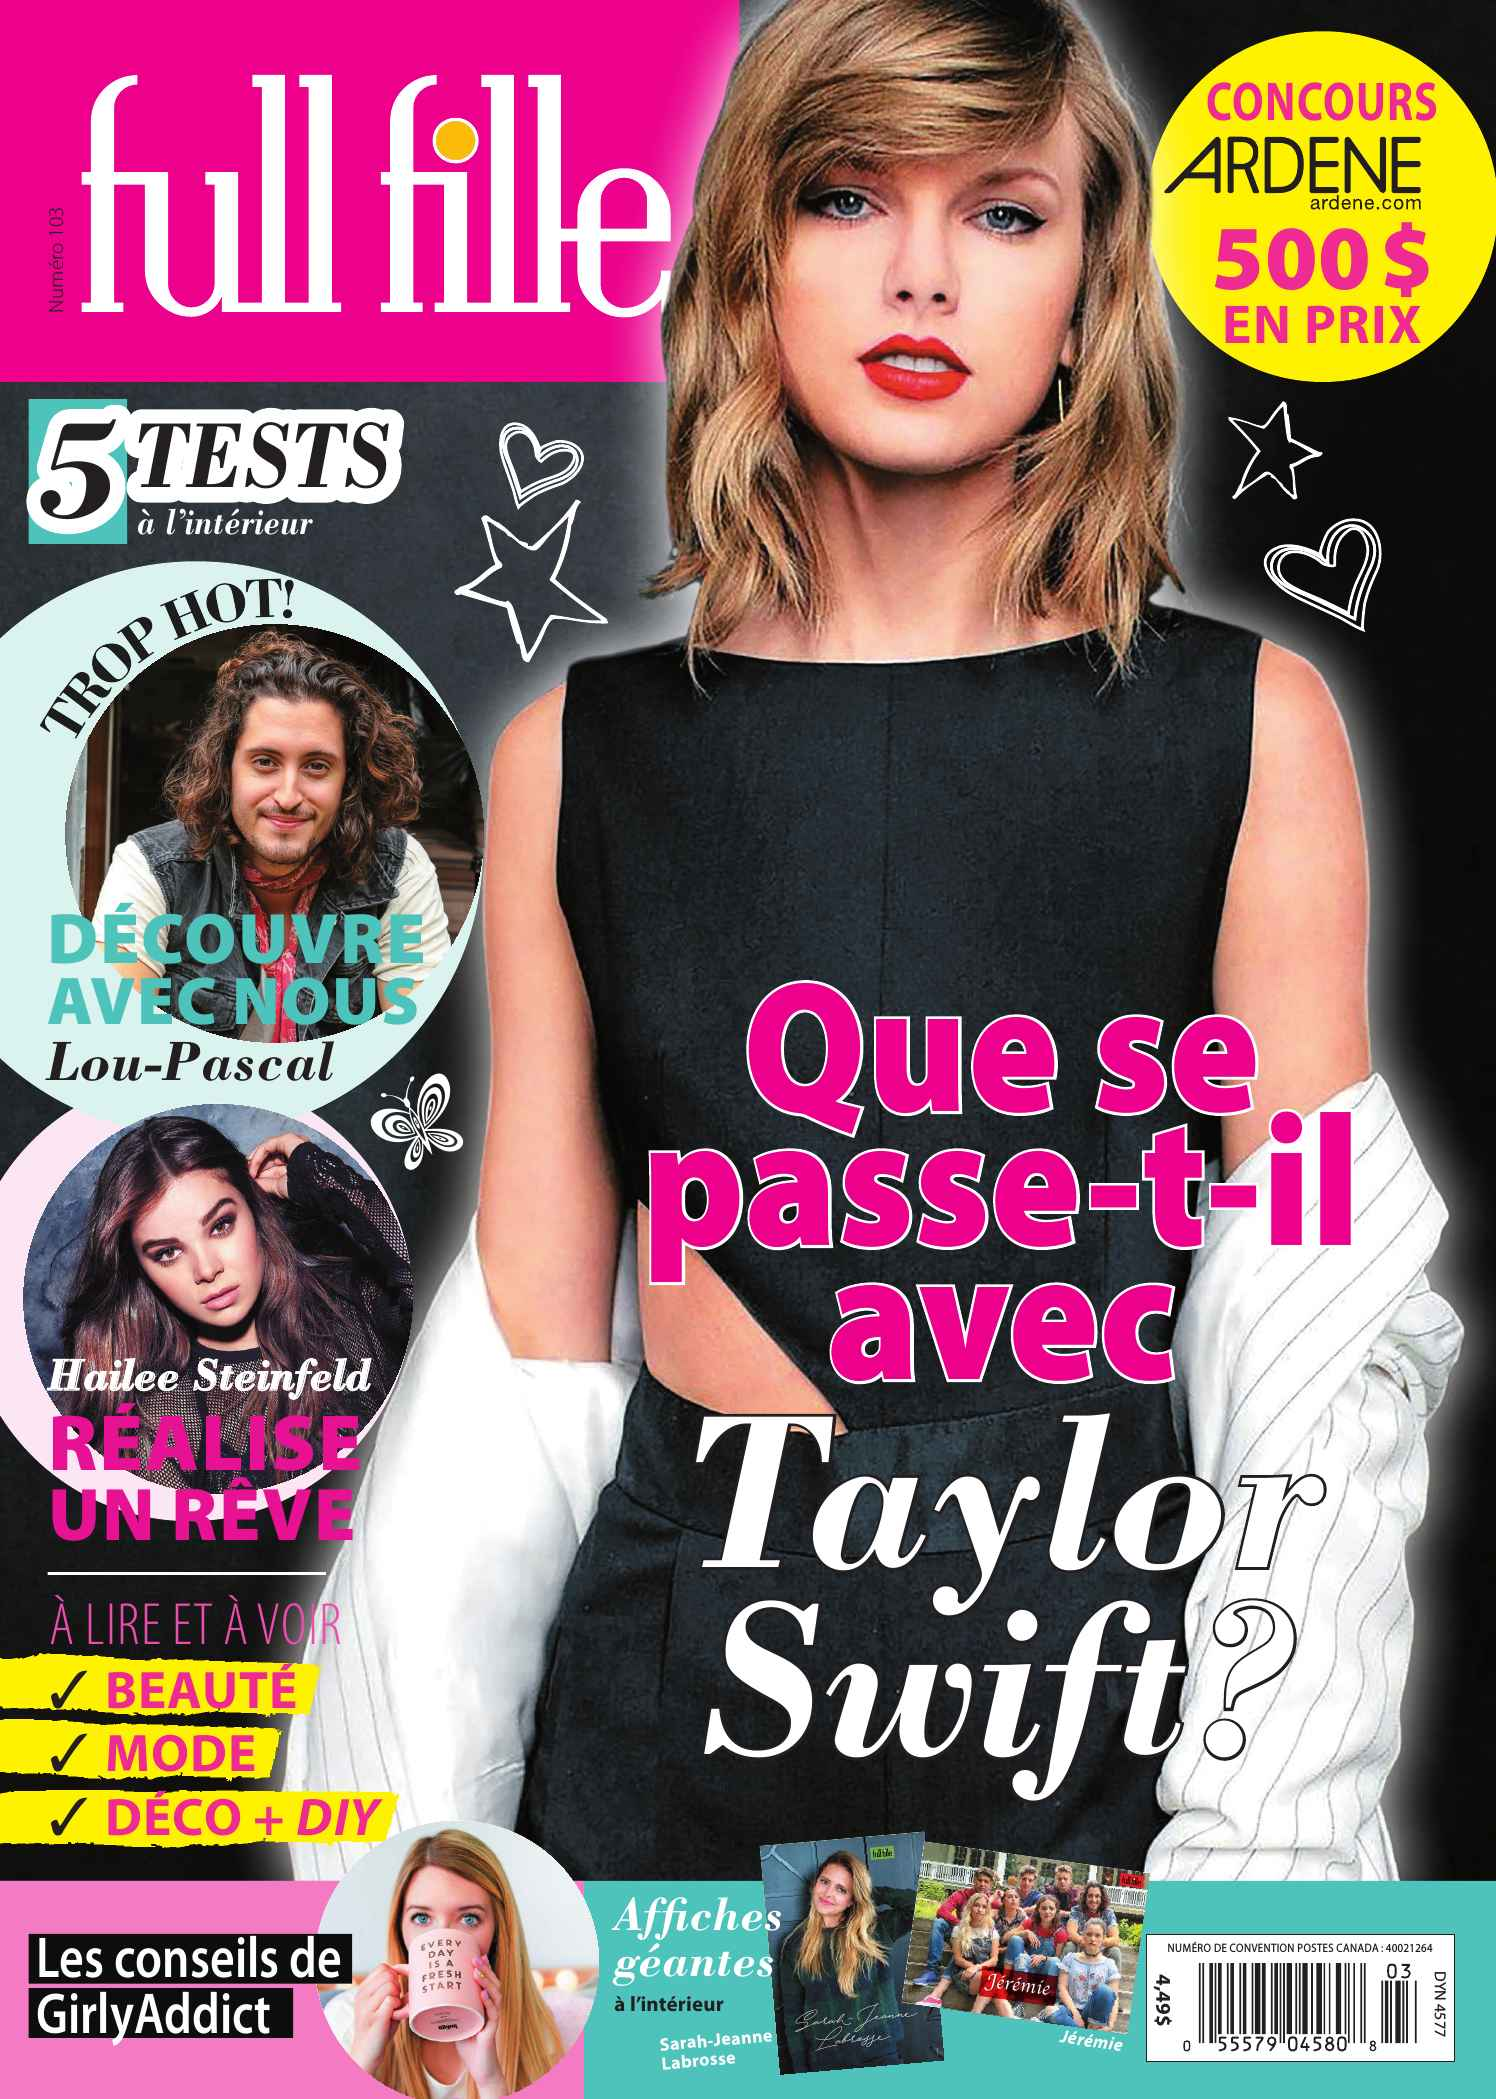 Couverture FULL FILLE 0103 magenligne.com Taylor Swift